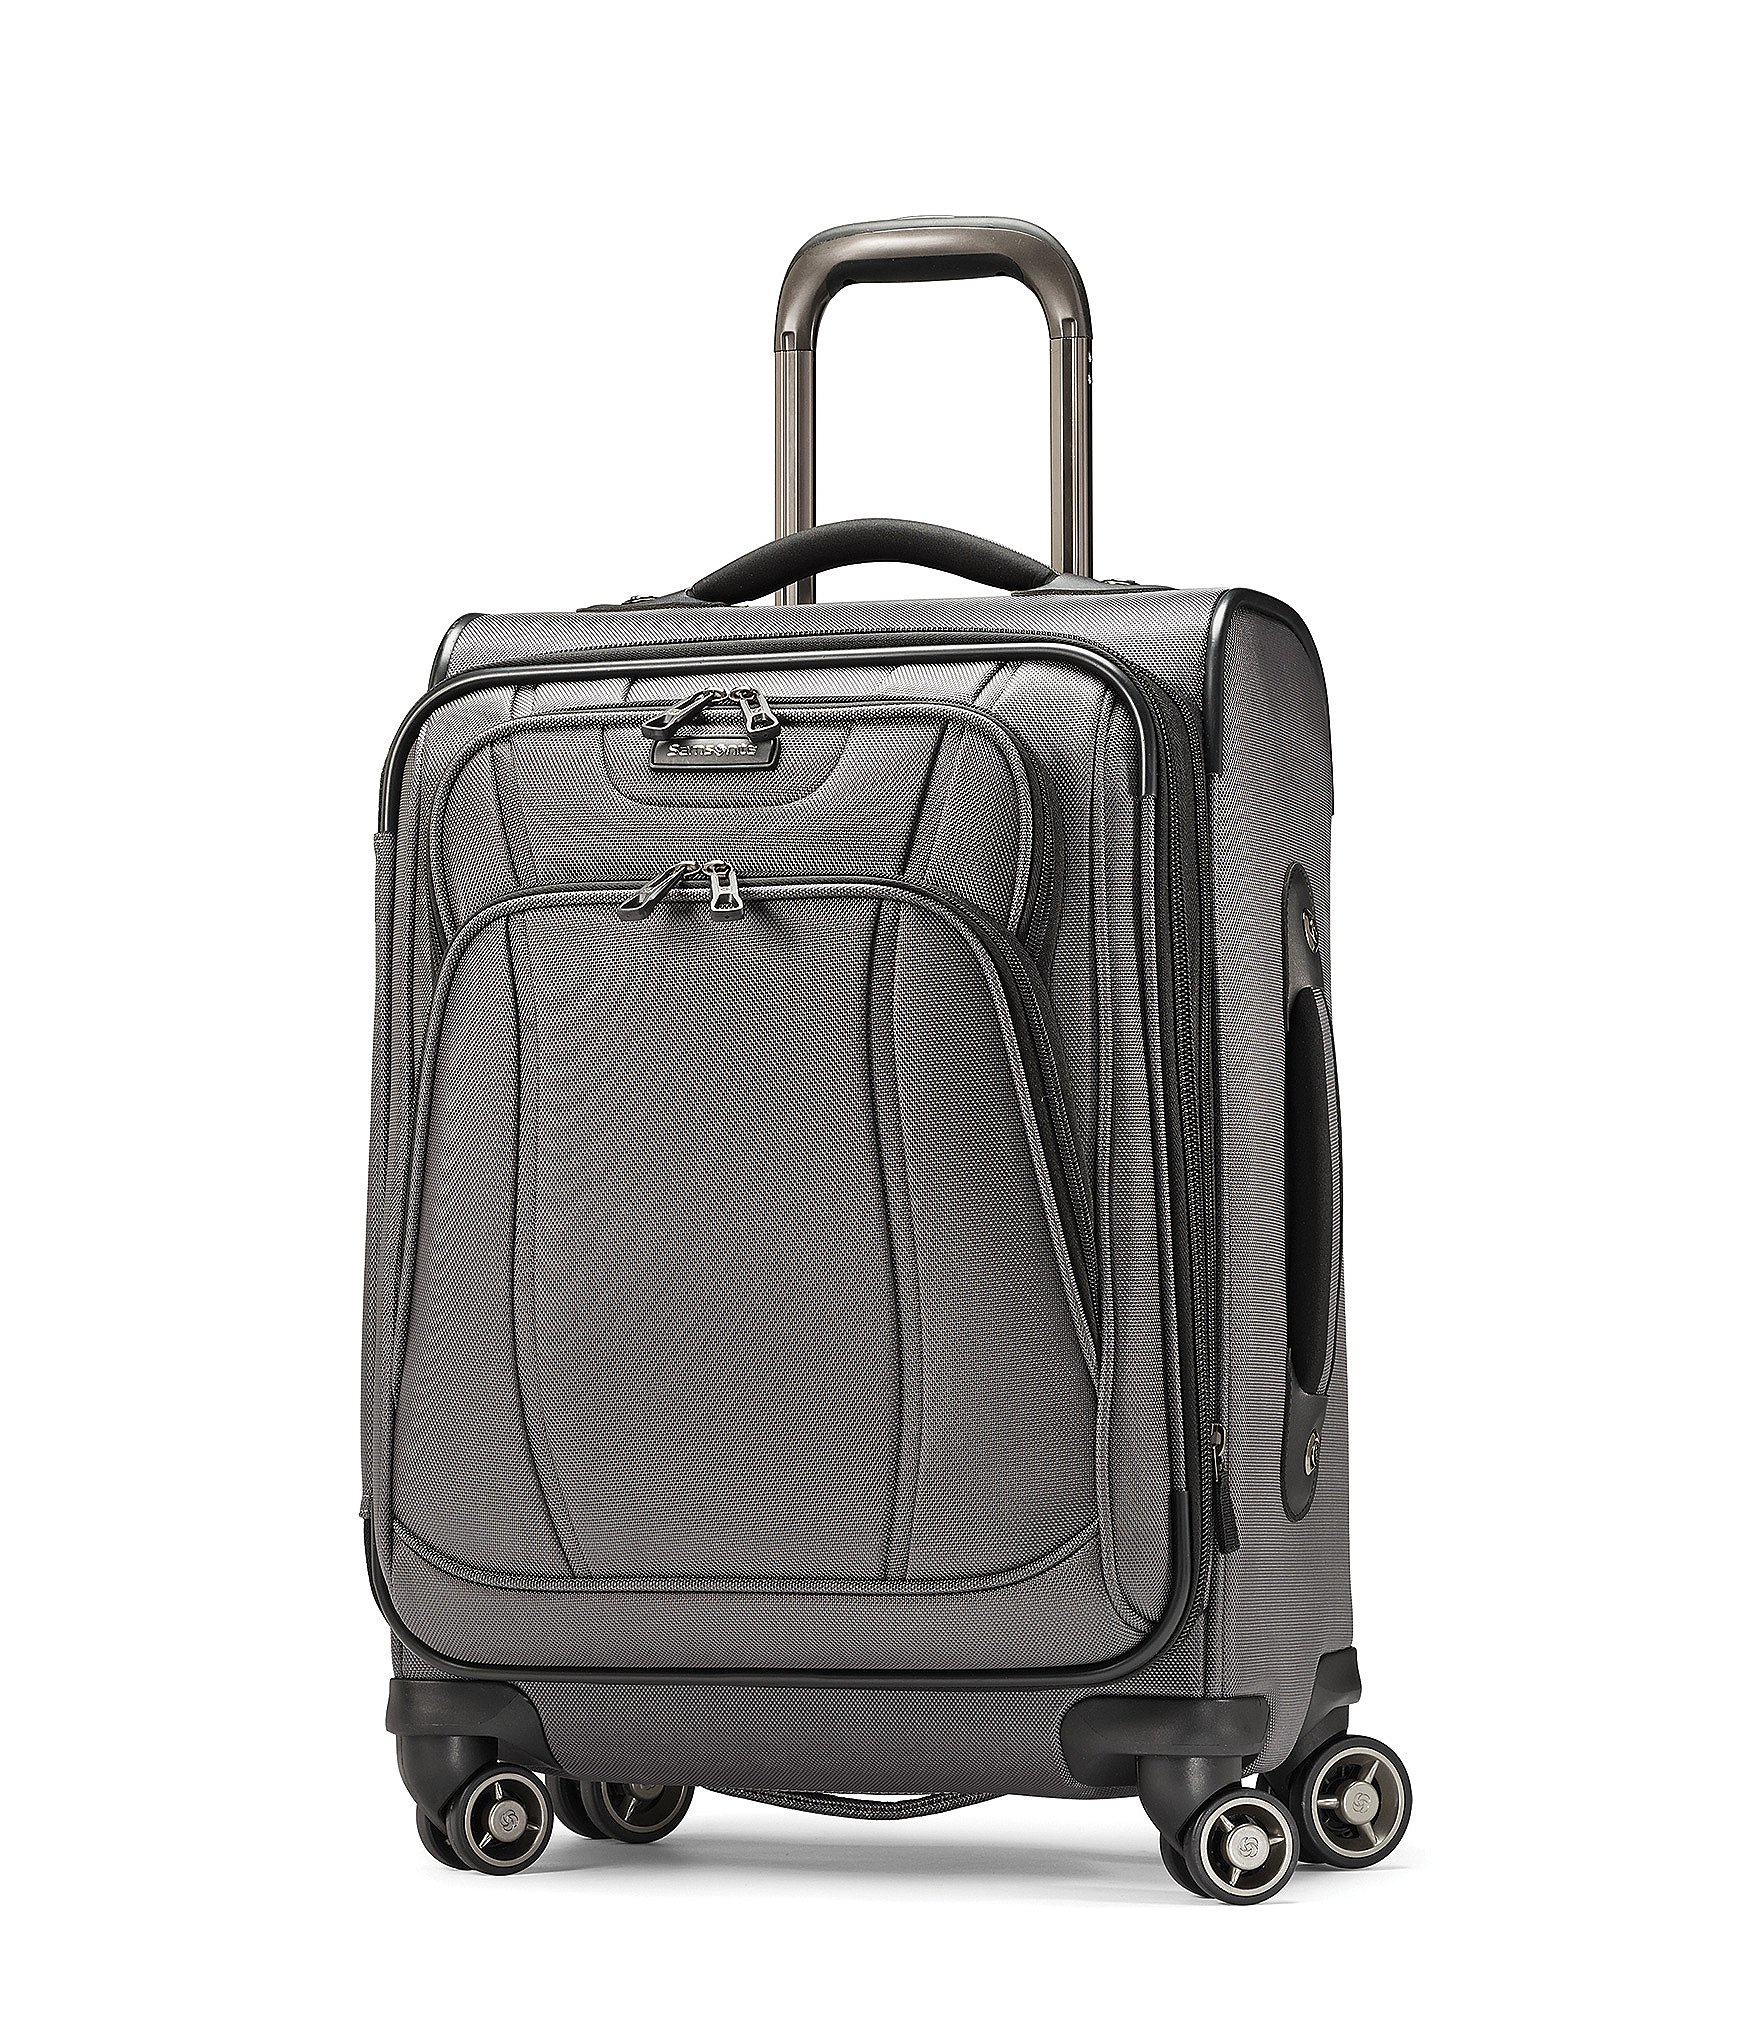 Samsonite Dk3 21 Quot Spinner Upright In Gray For Men Grey